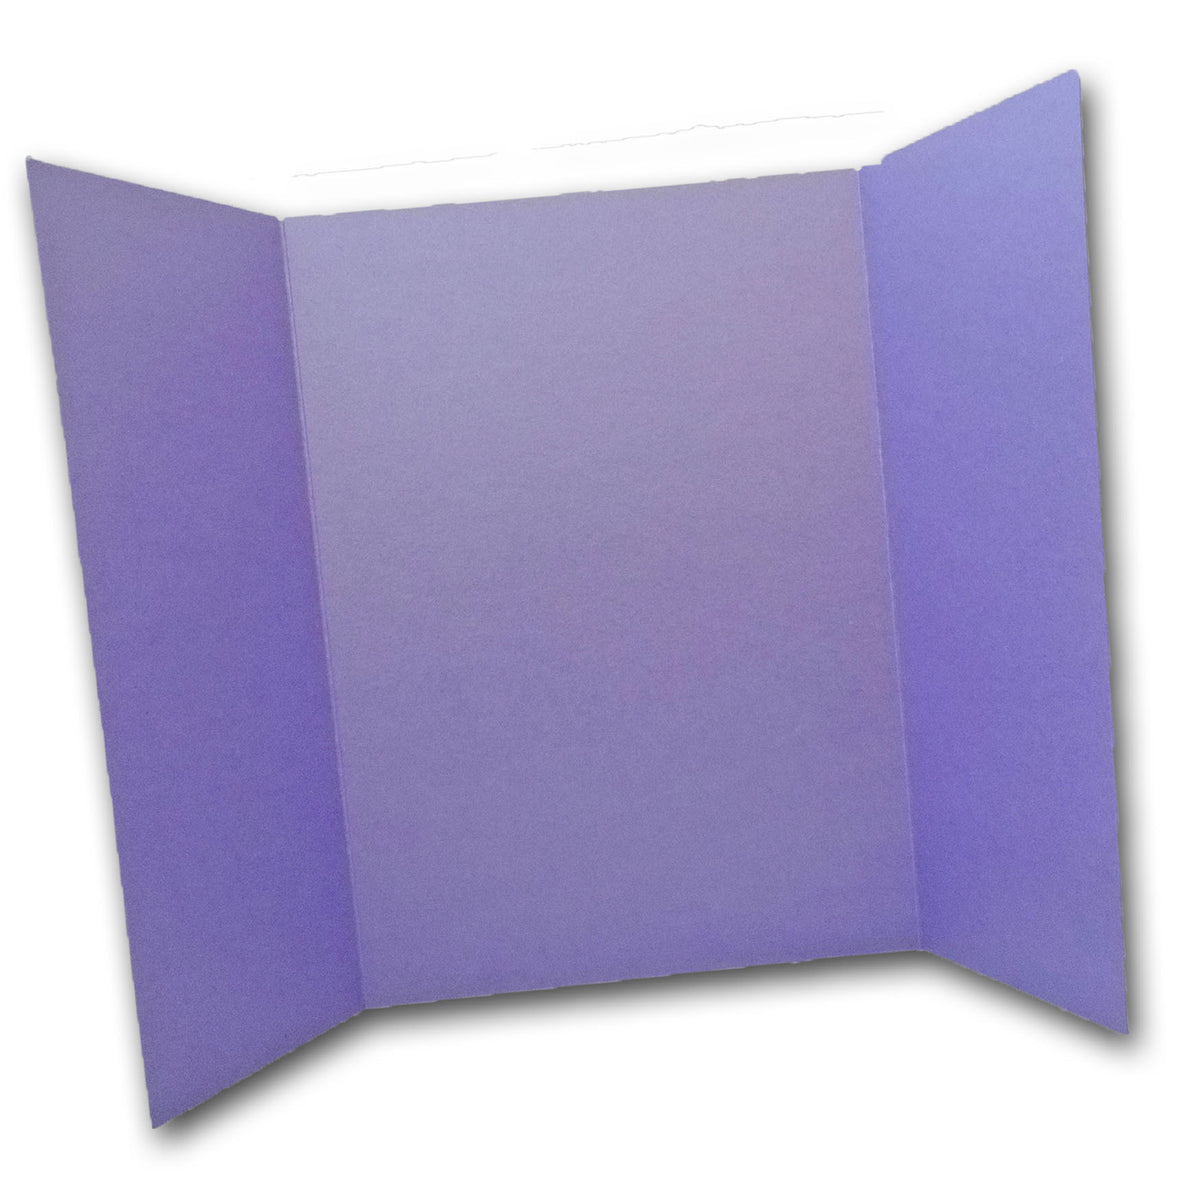 Shimmery Lavender 5x7 Gatefold Discount Card Stock DIY Invitations